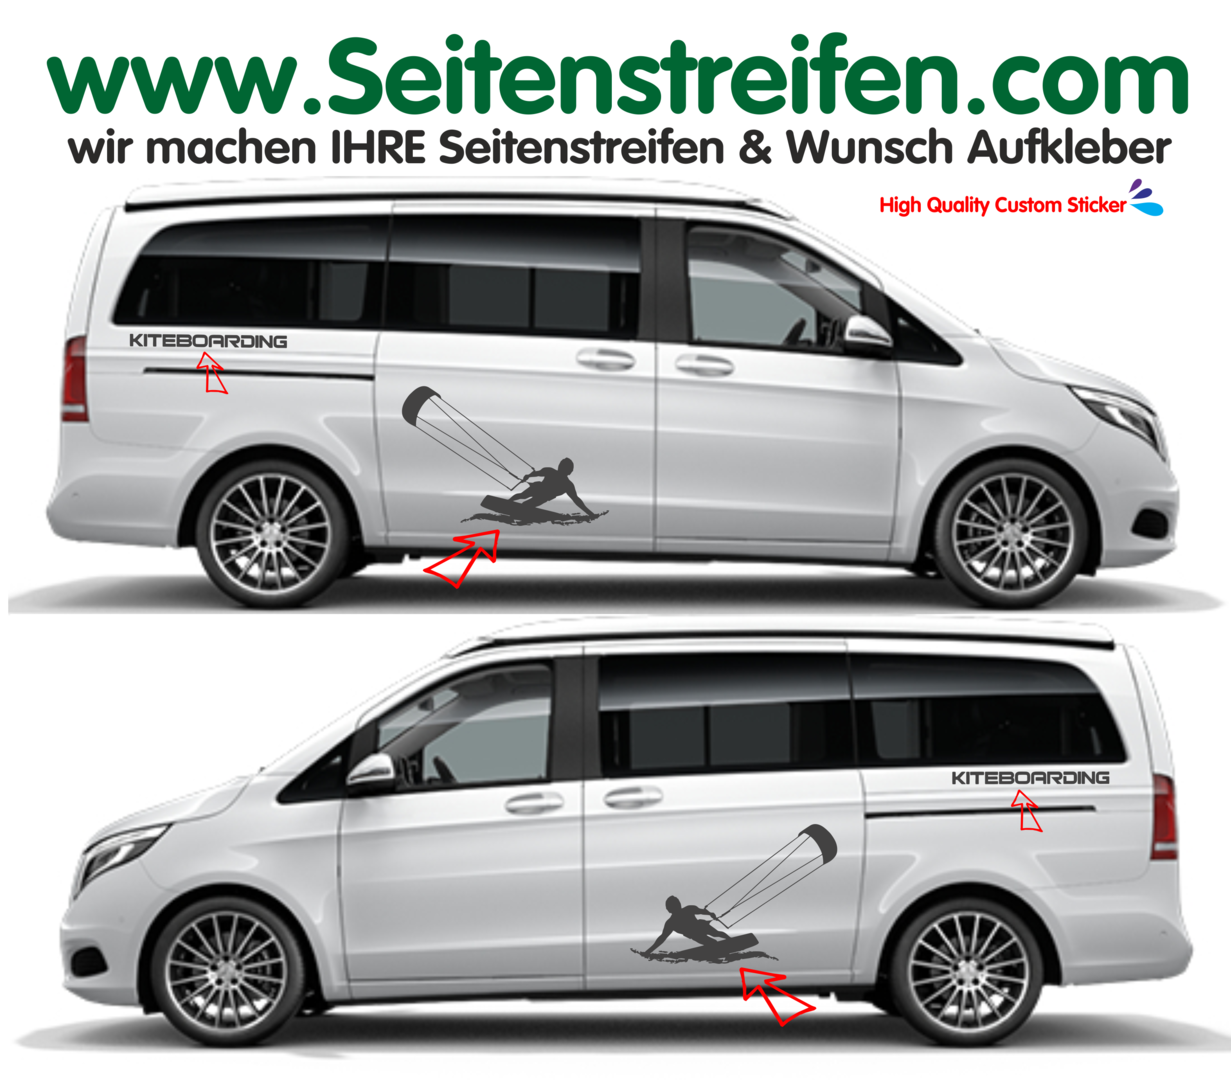 Mercedes Benz Class V - XL Kitesurf - Side Stripes Graphics Decals Sticker Kit - N° 9503